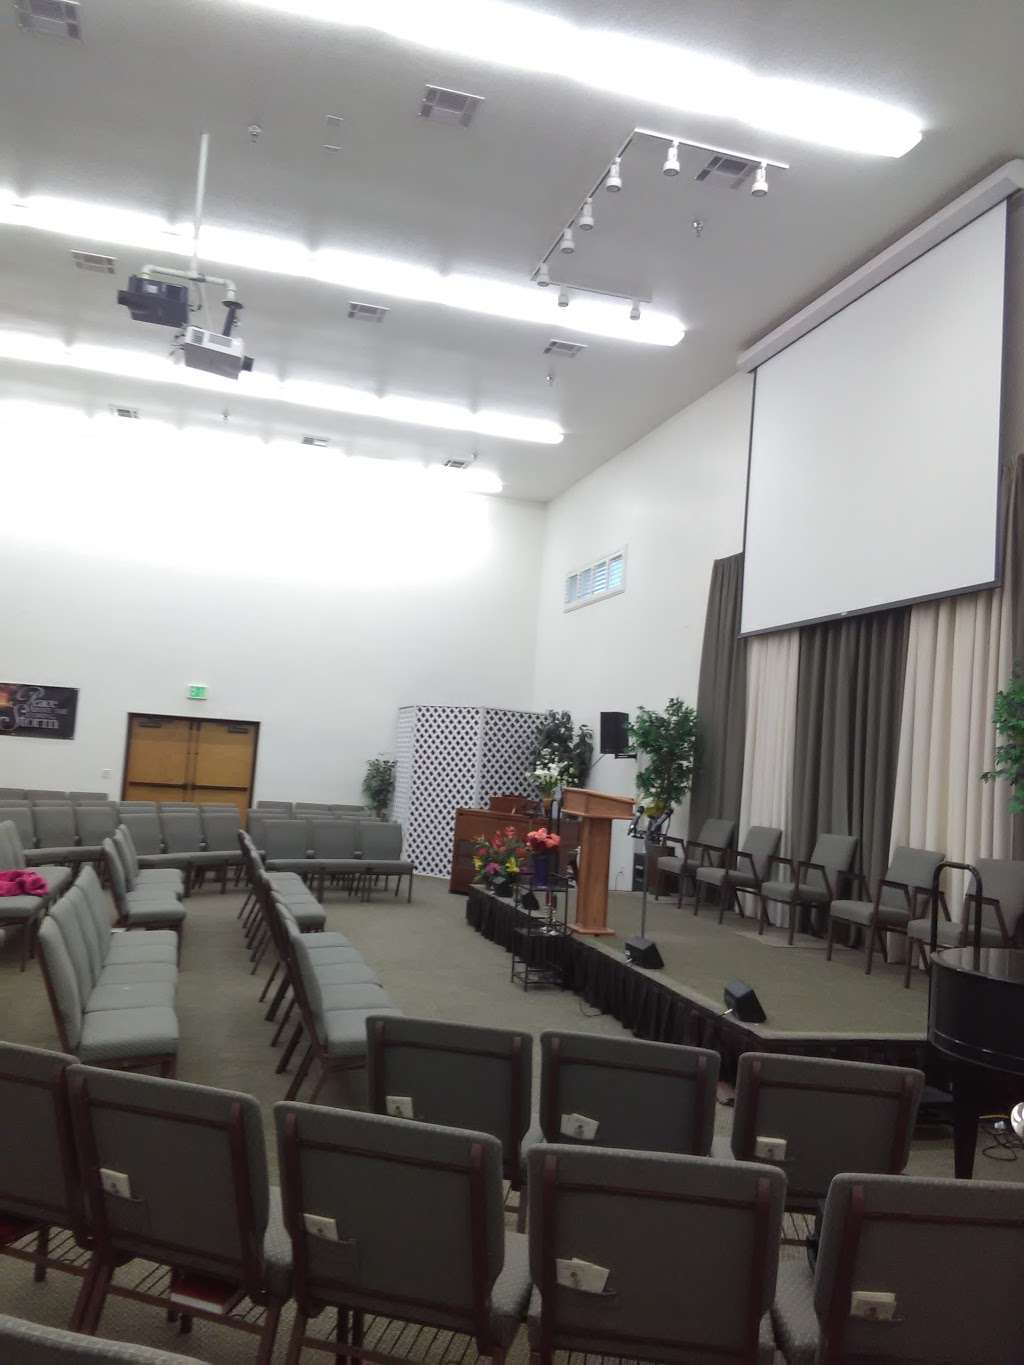 San Marcos Seventh-day Adventist Church - church  | Photo 6 of 7 | Address: 363 Woodland Pkwy, San Marcos, CA 92069, USA | Phone: (760) 744-9777